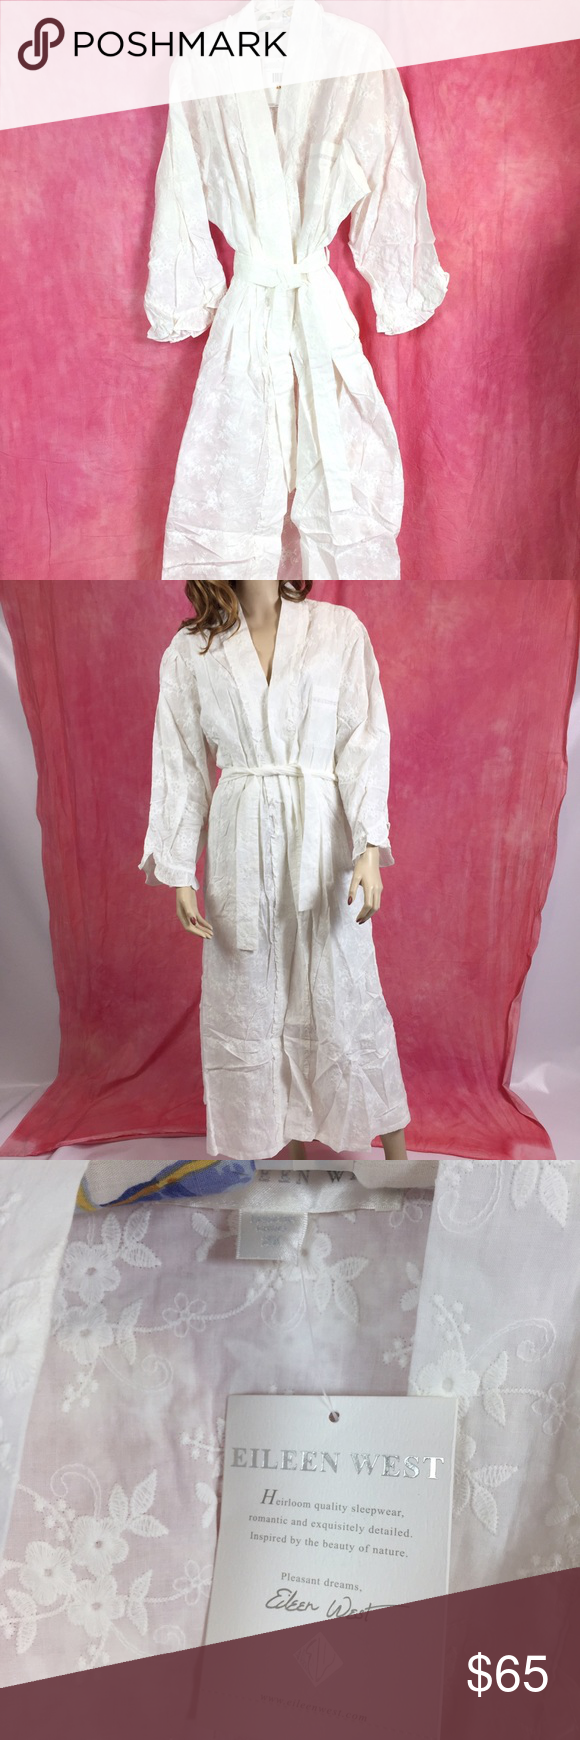 Selling this NWT EILEEN WEST EMBROIDERED WHITE ROBE SIZE 2X on Poshmark! My username is: daphsam. #shopmycloset #poshmark #fashion #shopping #style #forsale #Eileen West #Other